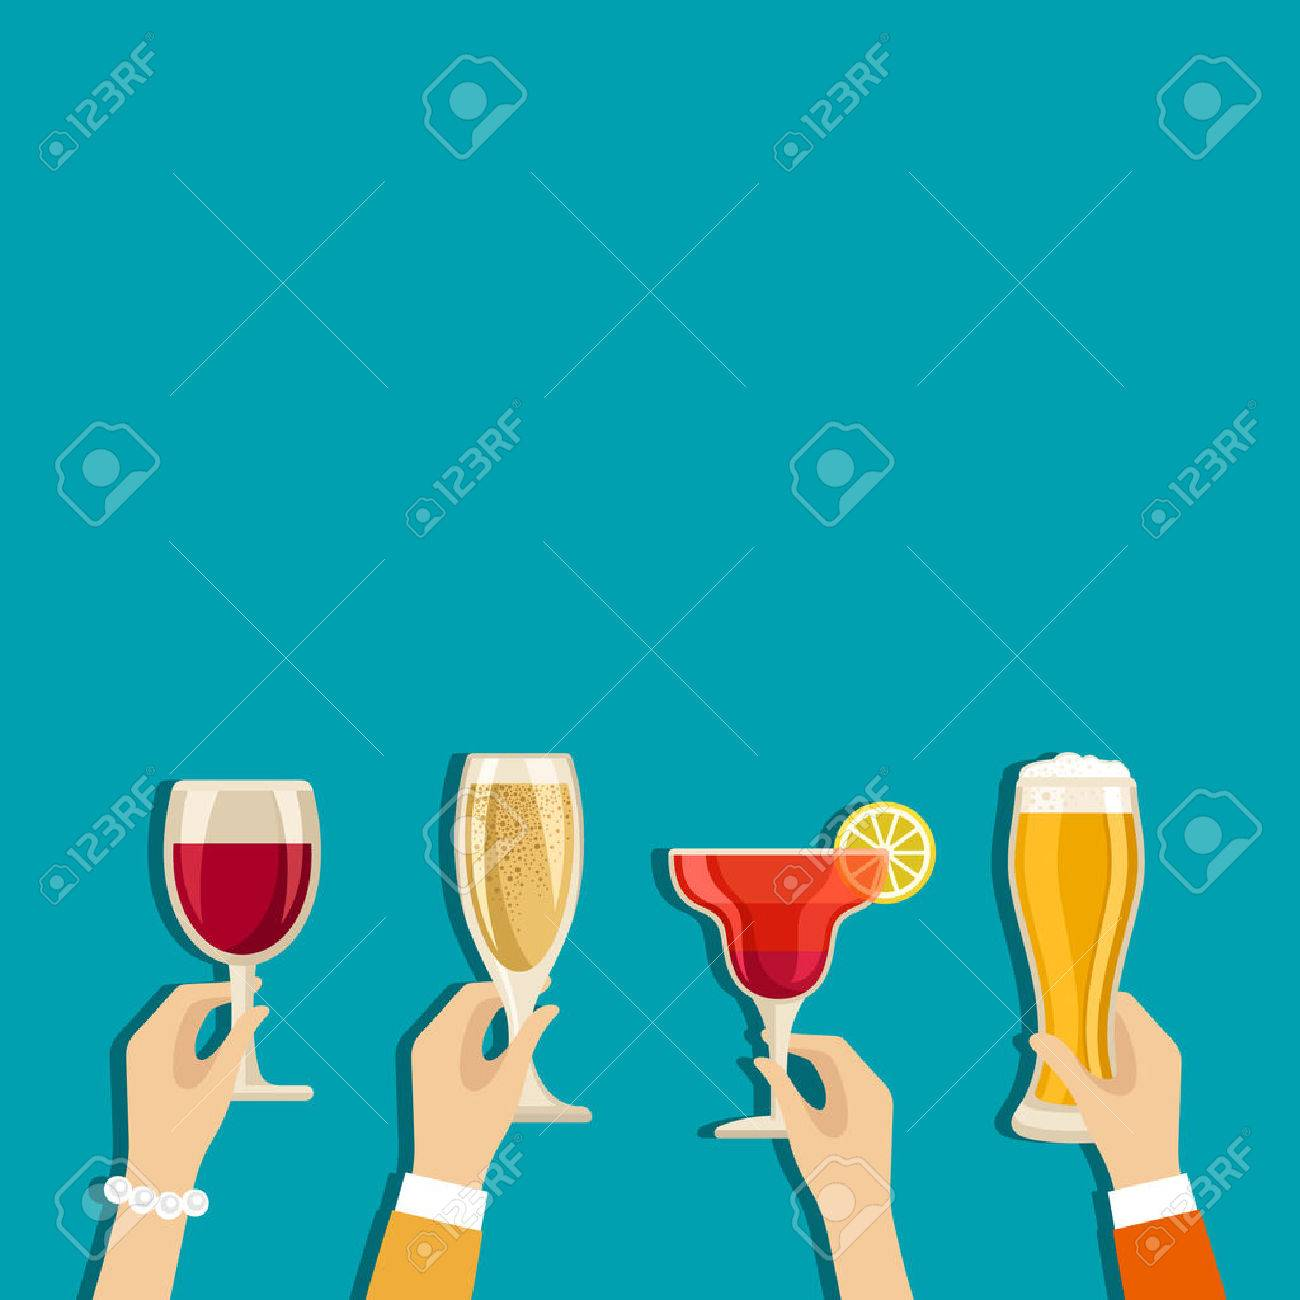 Cheers hands vector poster with place for text - 43211023